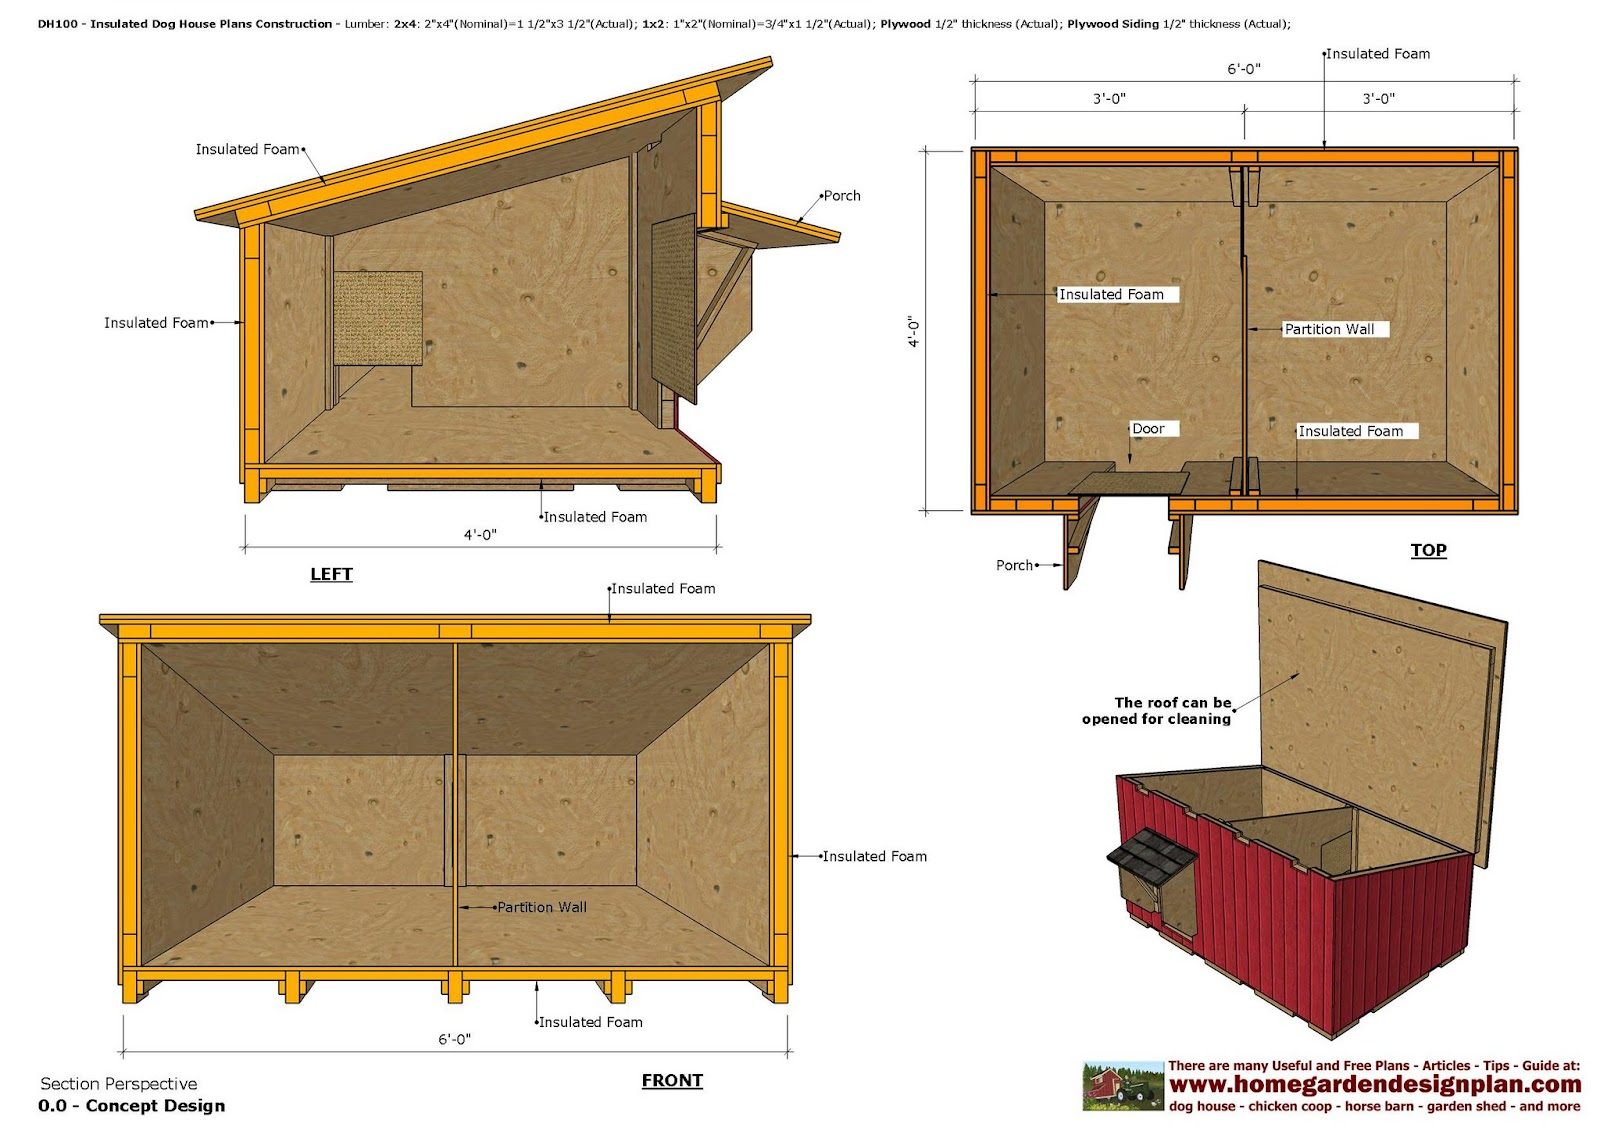 Home garden plans dh100 insulated dog house plans dog for Dog kennel floor plans